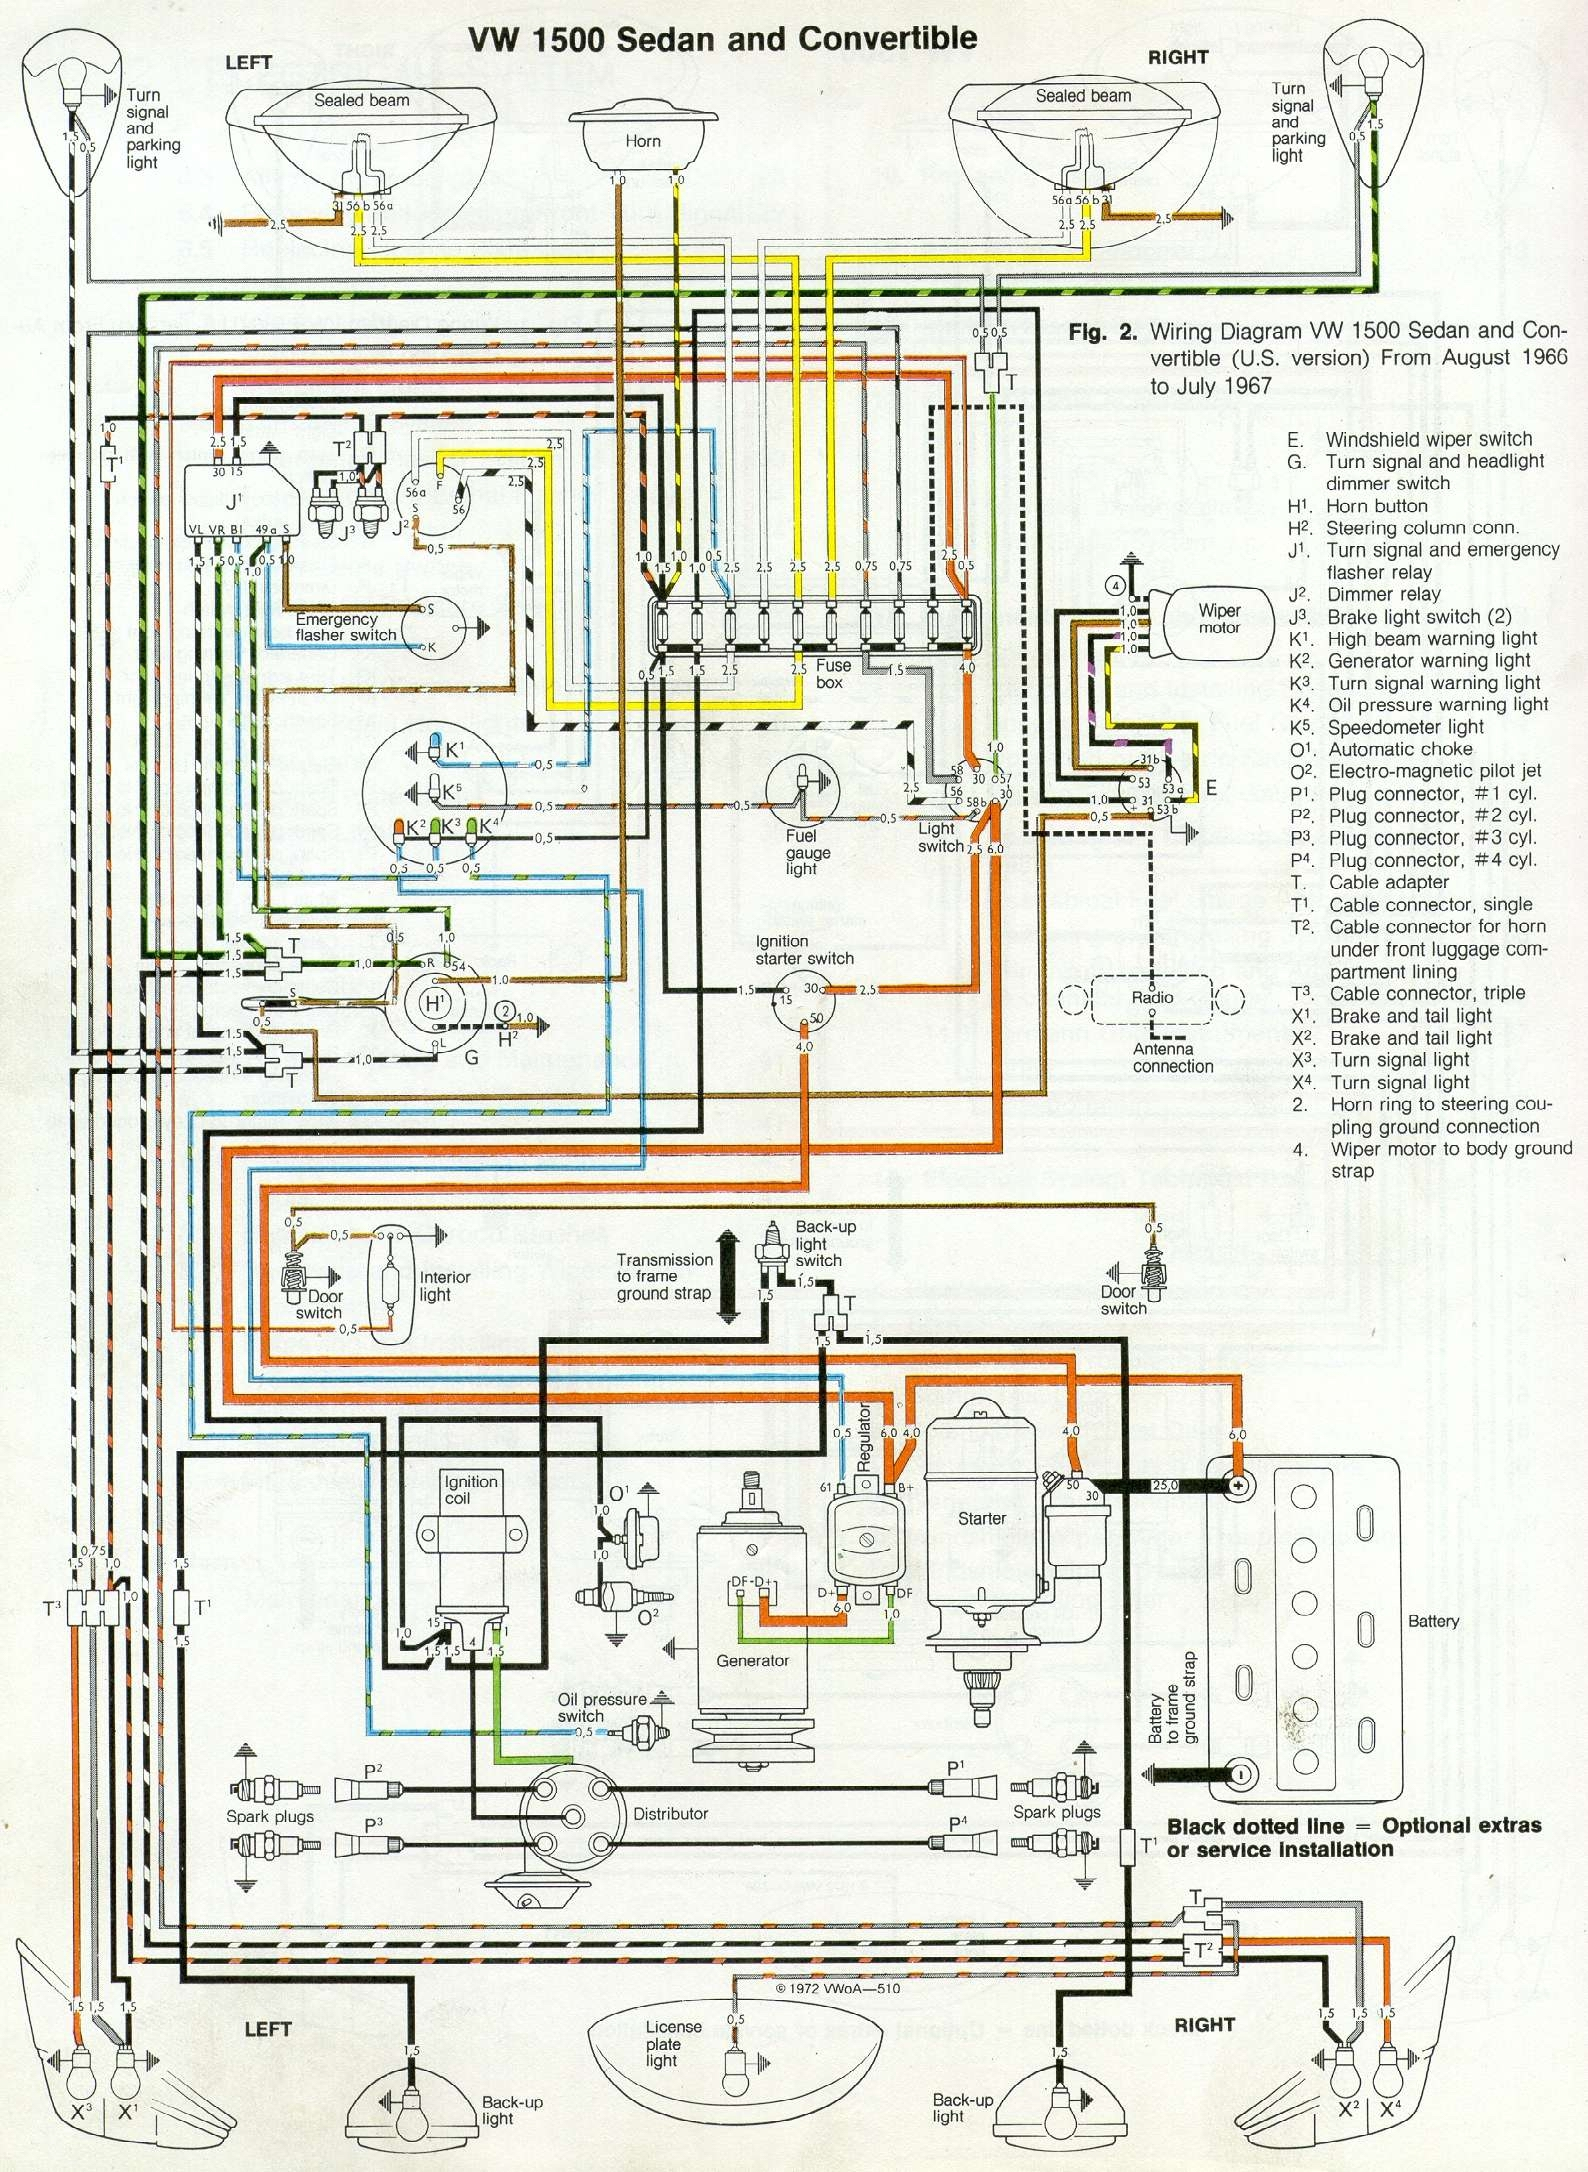 wiring diagram for 1966 vw beetle custom wiring diagram u2022 rh littlewaves co 1959 vw bug wiring diagram 1959 vw bug wiring diagram